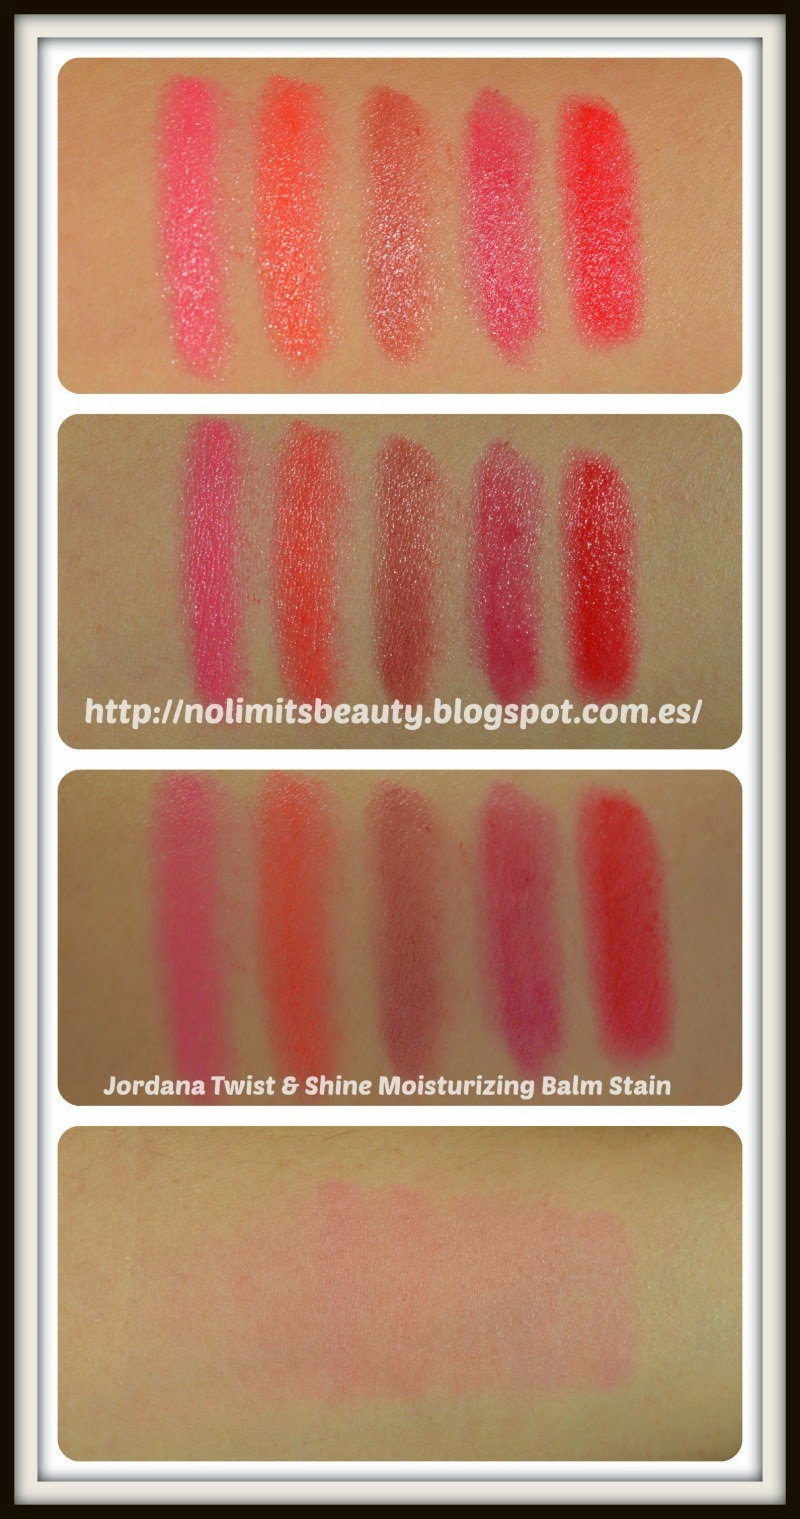 Jordana Twist And Shine Moisturizing Balm Stains: swatches & review